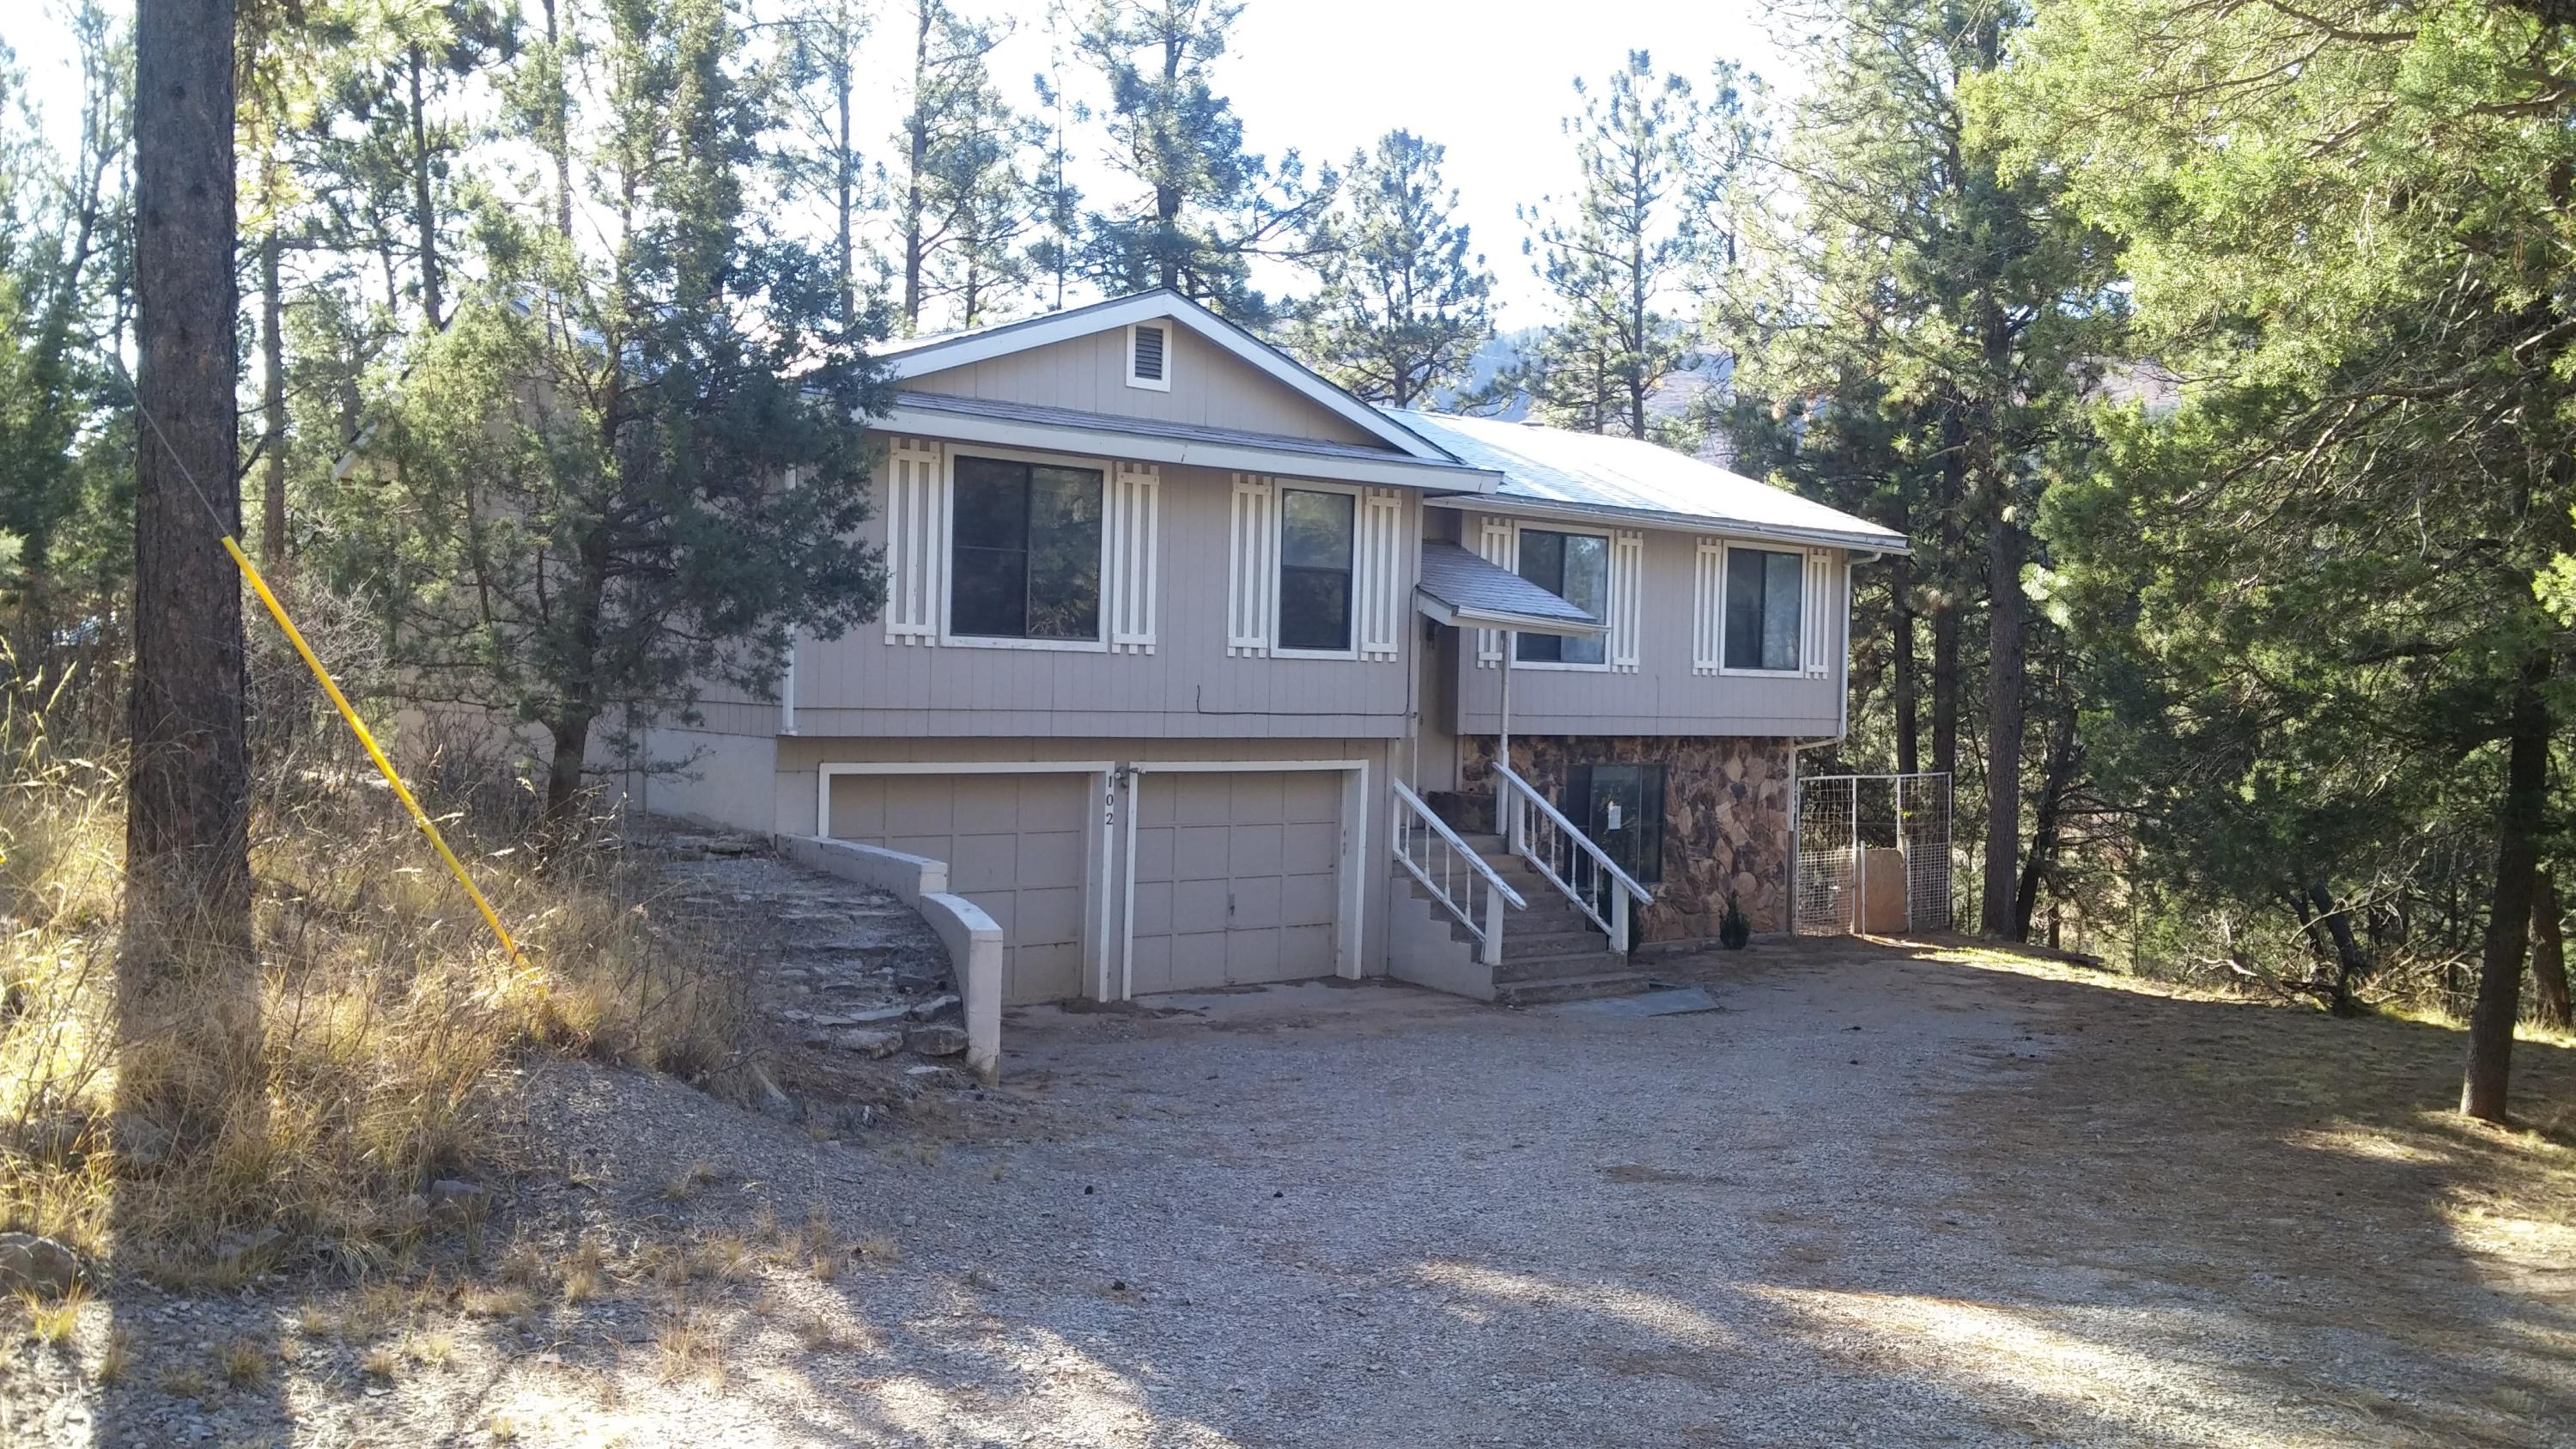 102 Bell Drive, Mayhill, NM 88339 - Mayhill, NM real estate listing